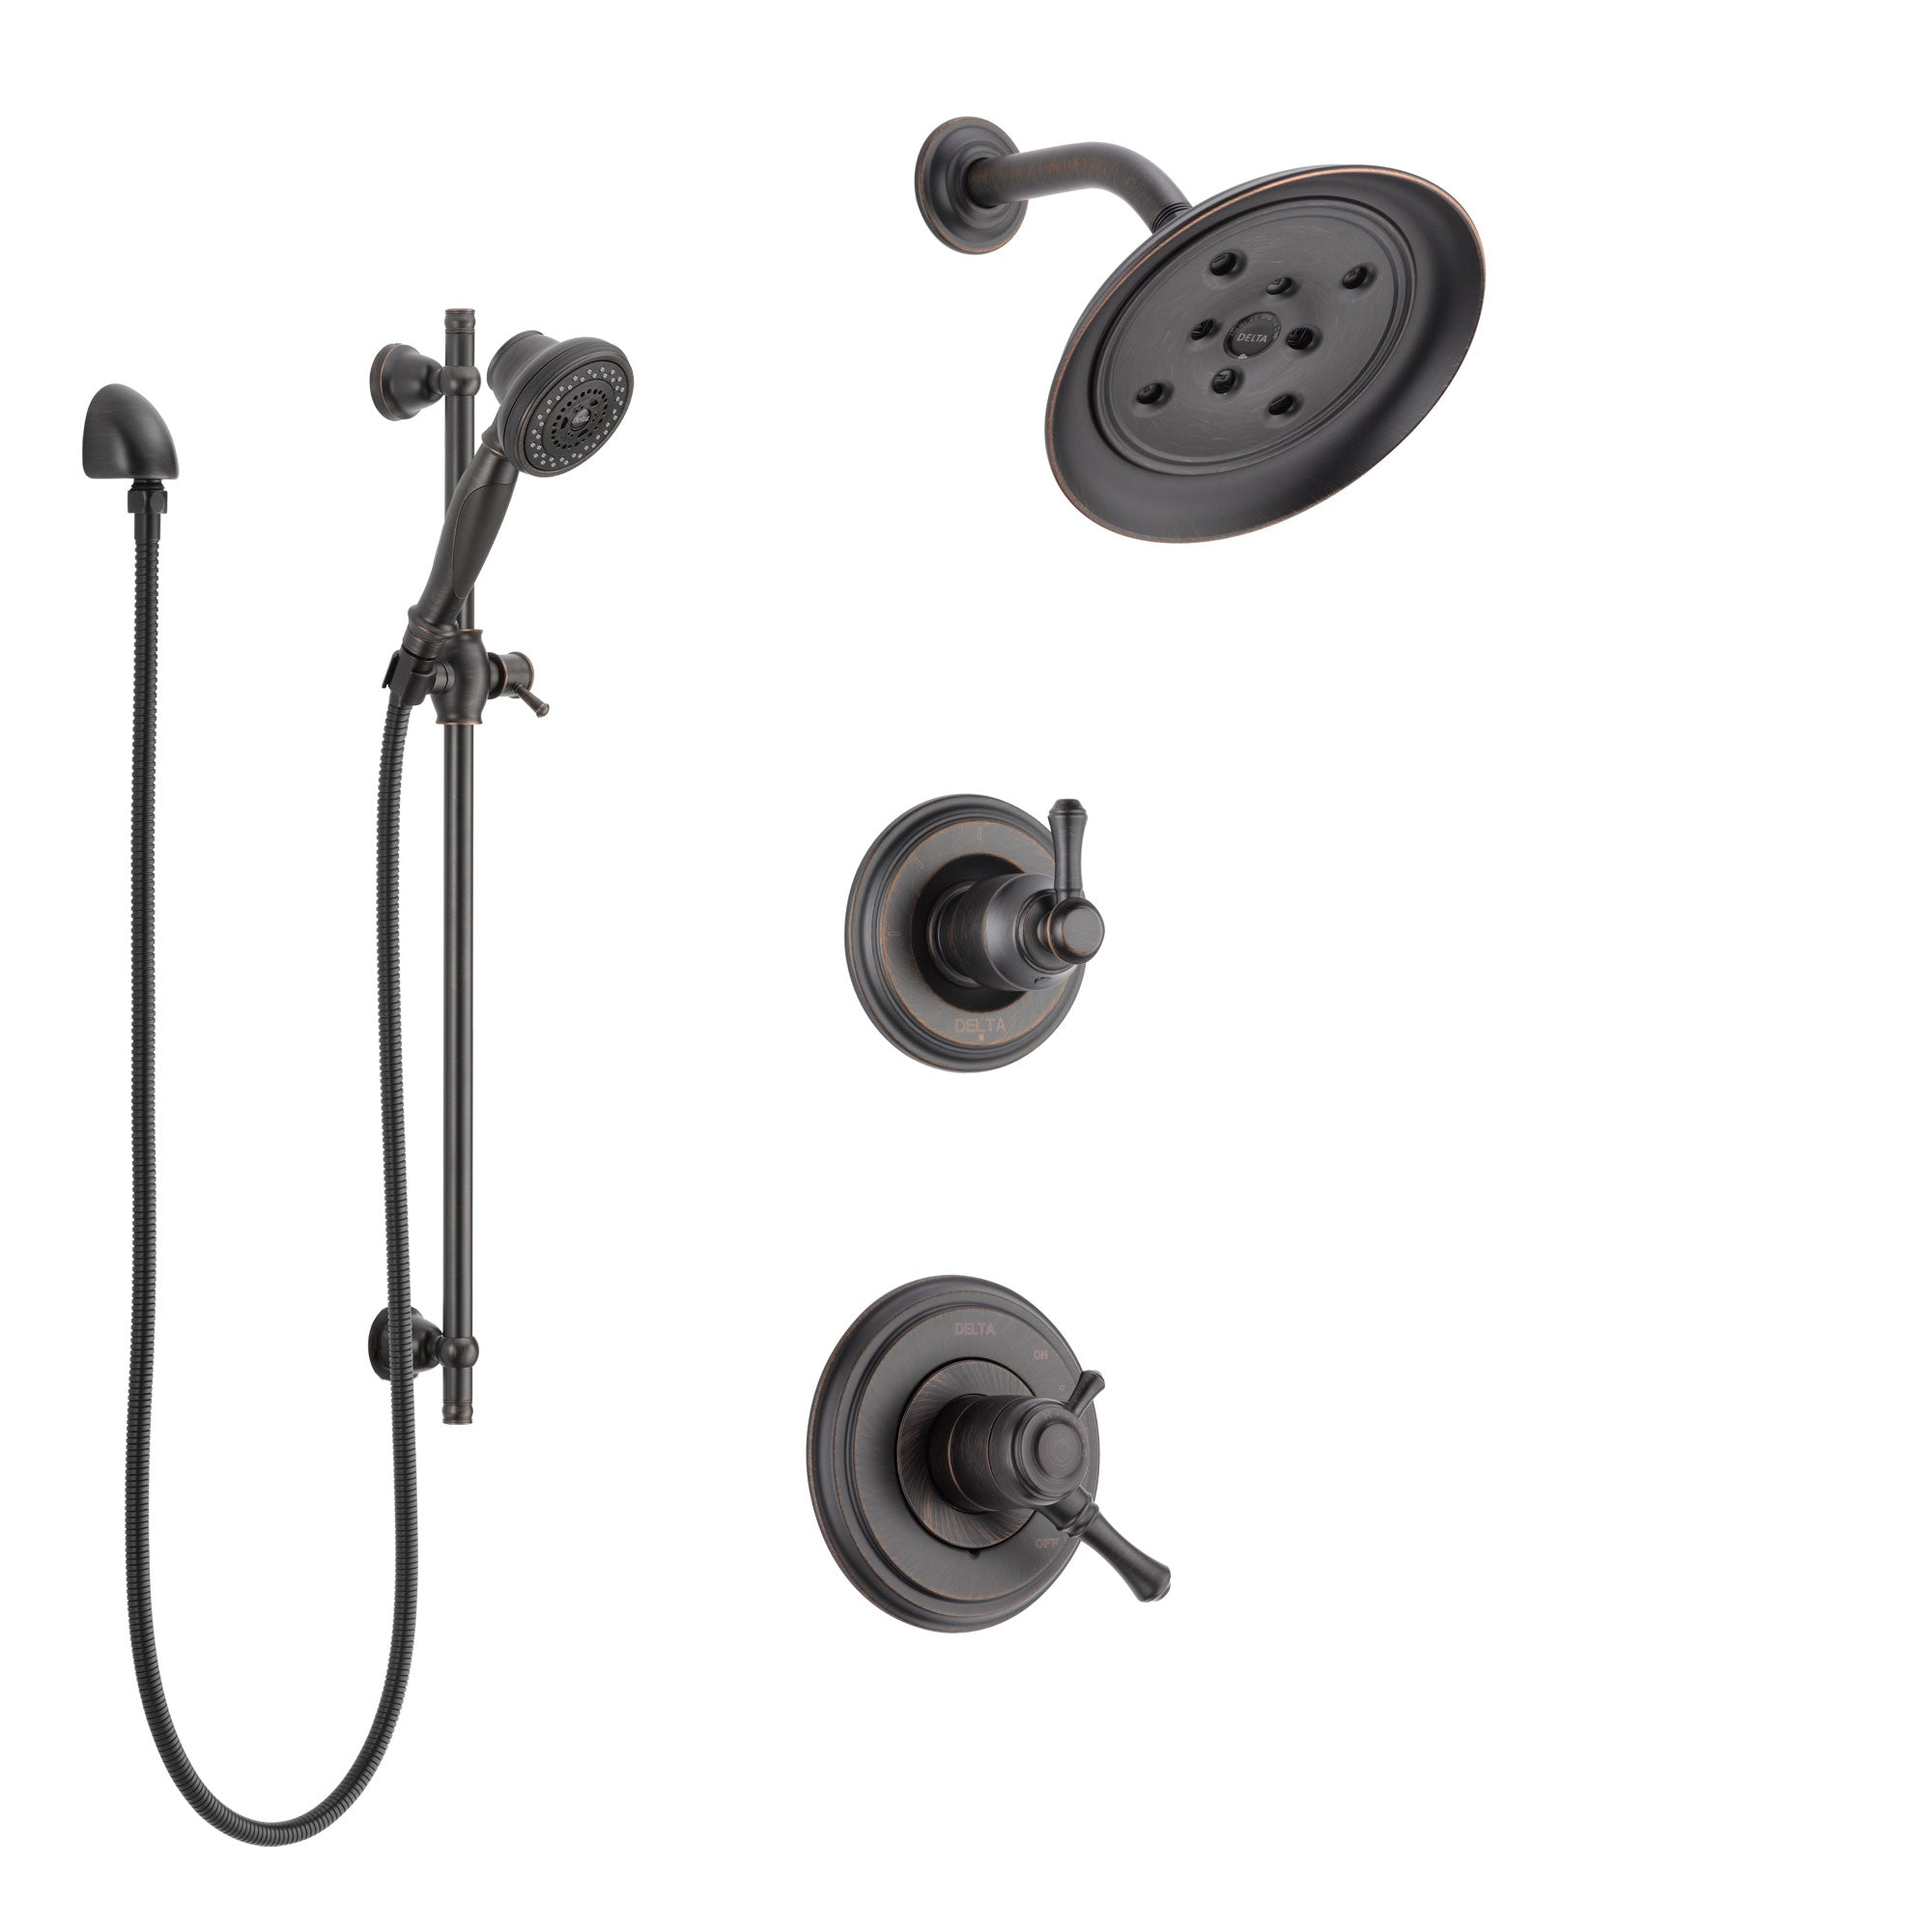 Delta Cassidy Venetian Bronze Finish Shower System with Dual Control Handle, 3-Setting Diverter, Showerhead, and Hand Shower with Slidebar SS17297RB5